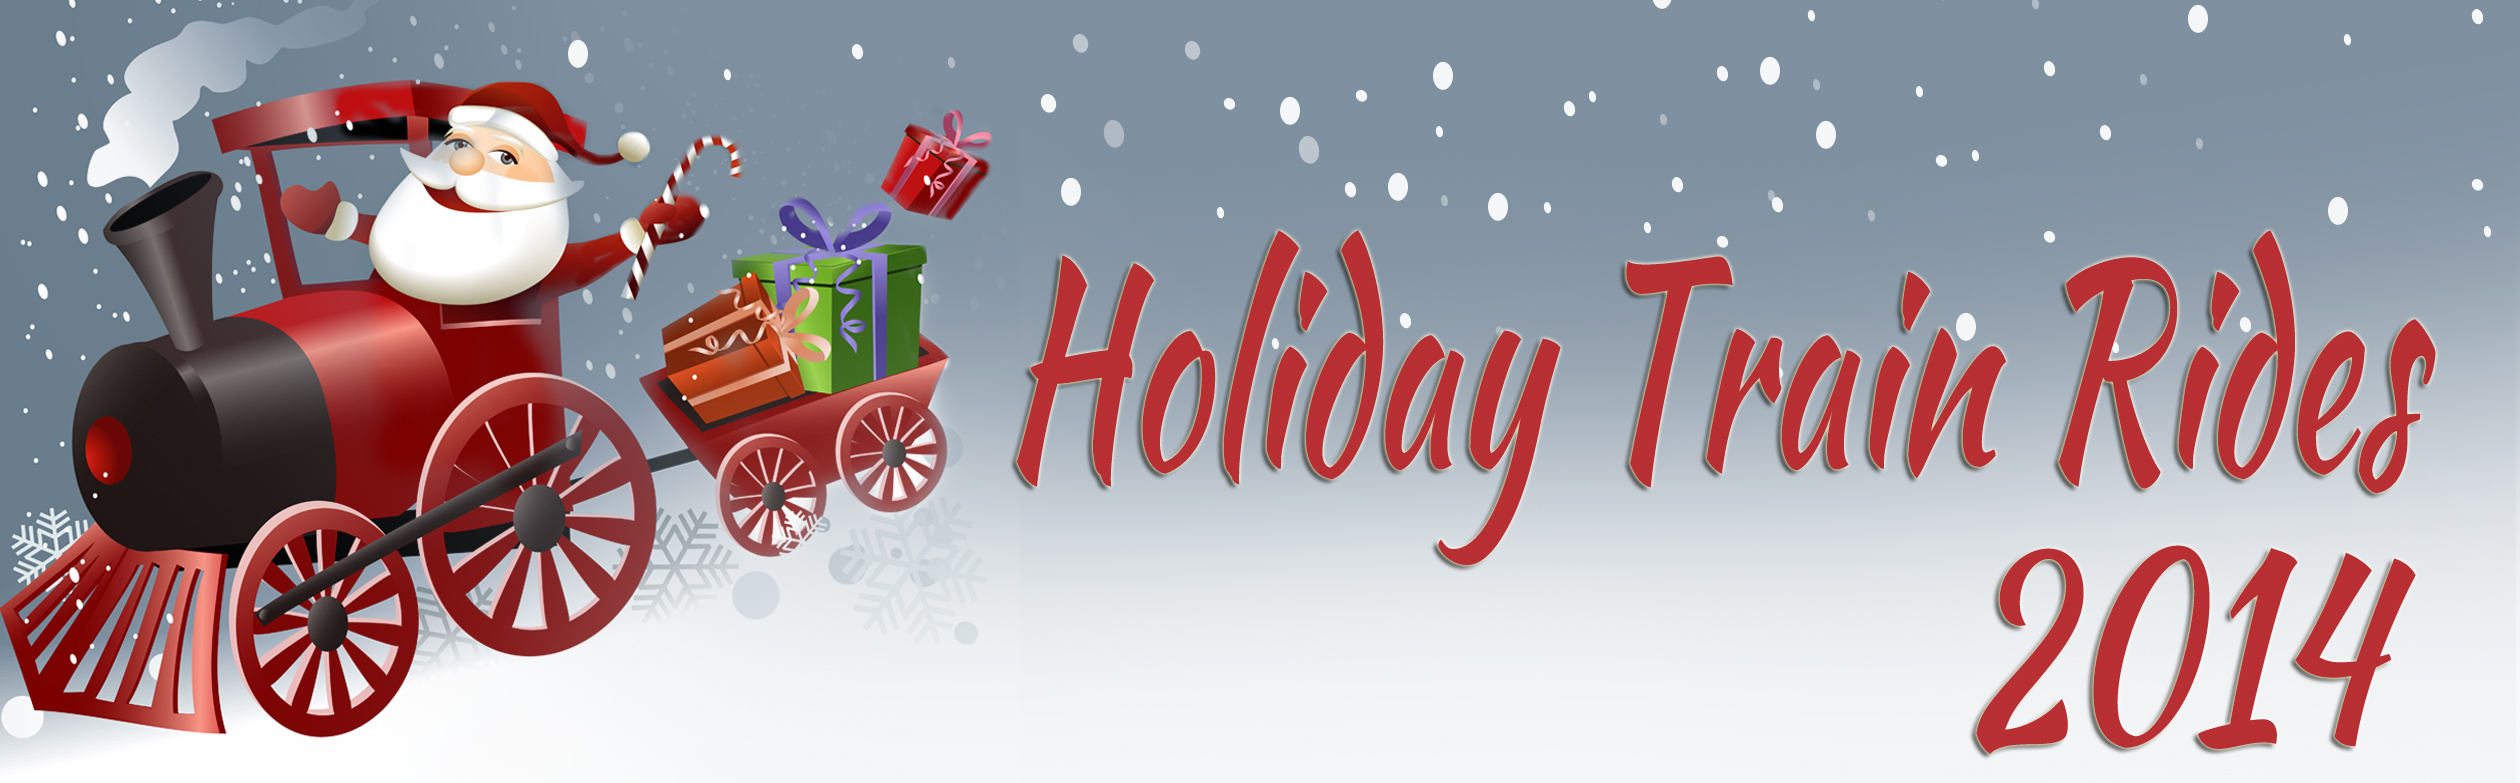 holiday-train-rides-banner.jpg